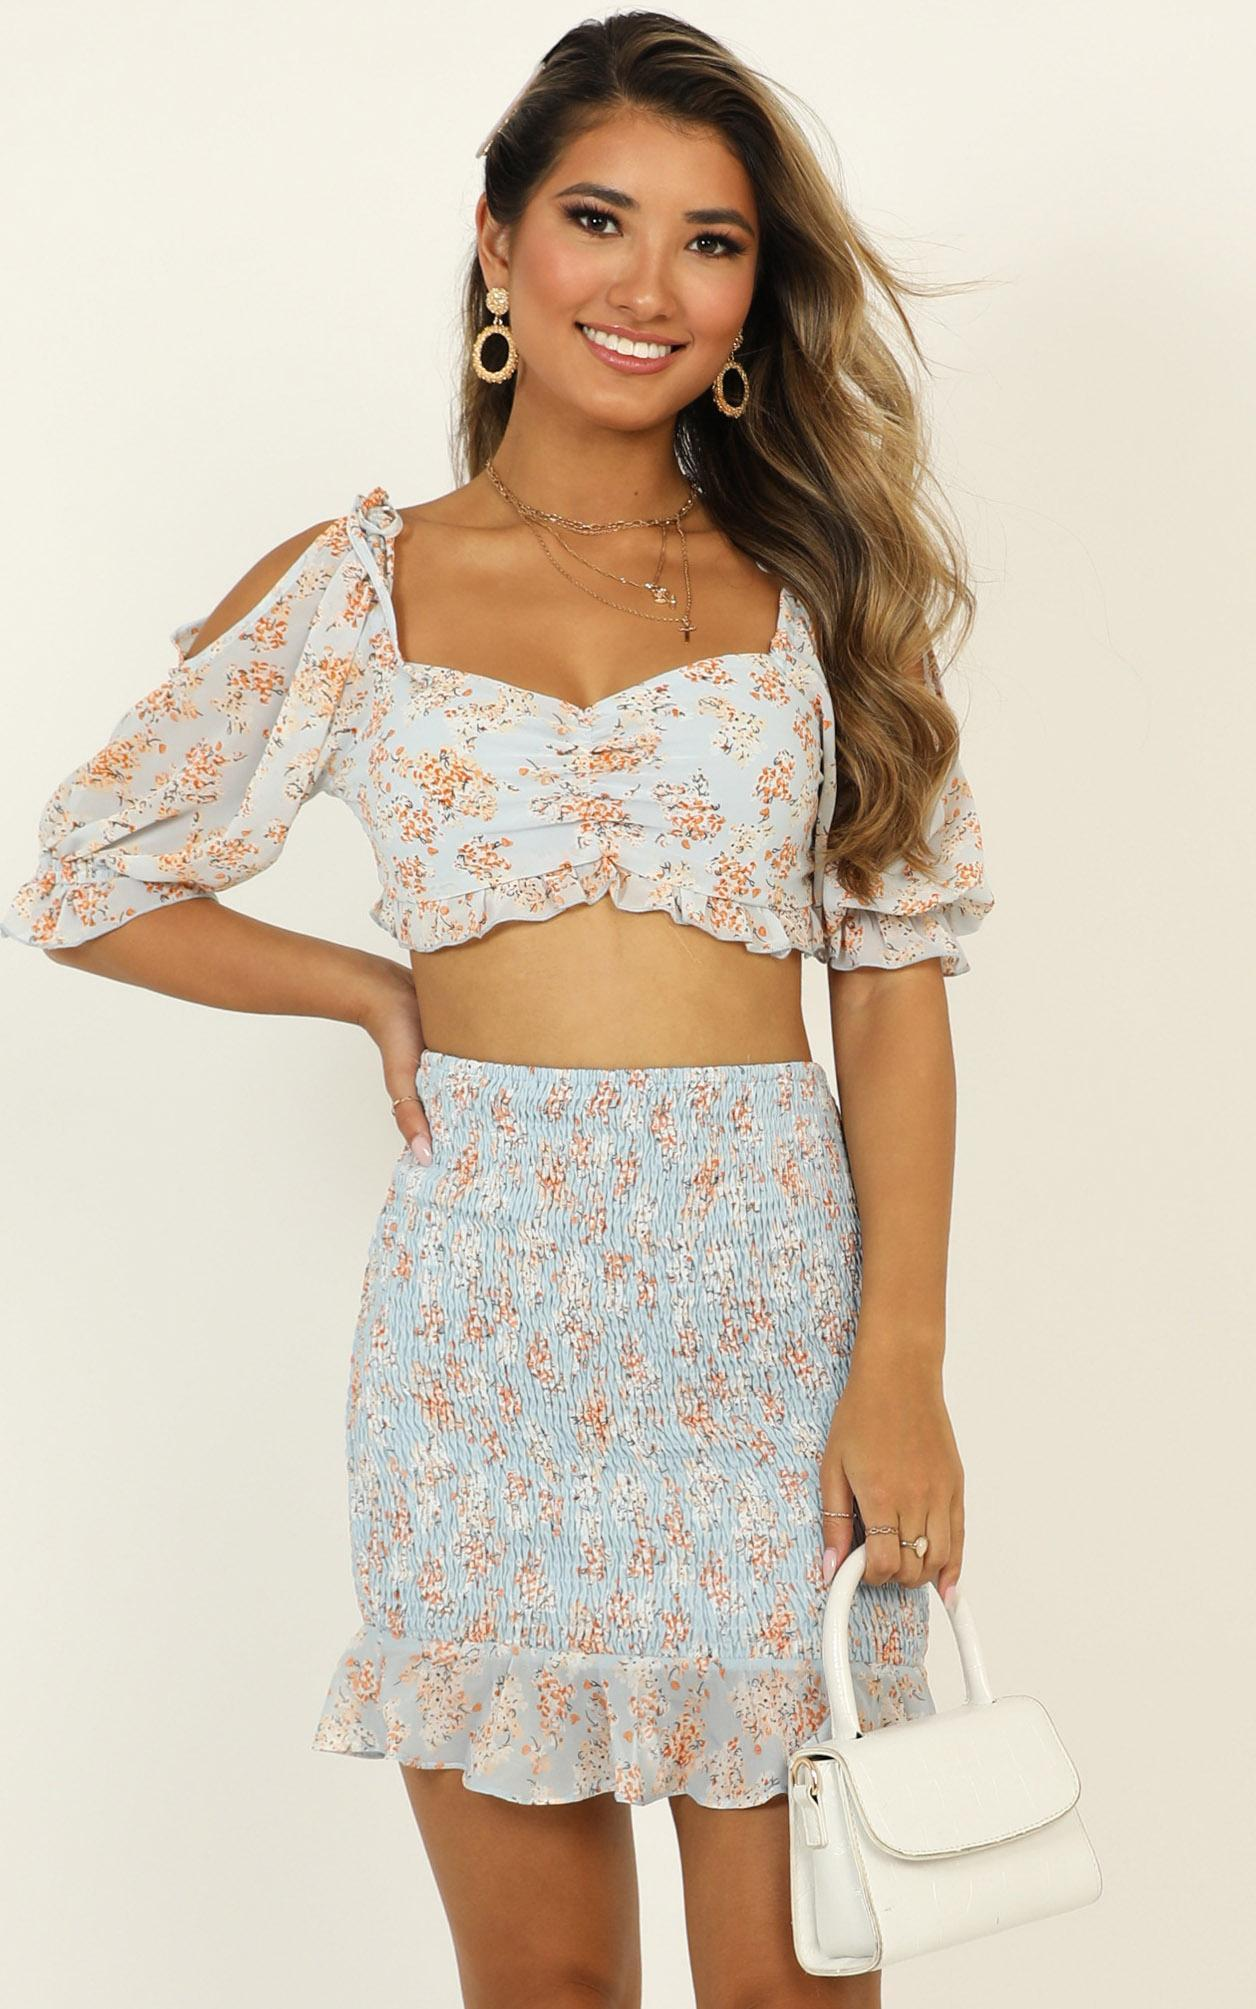 Gather Around Skirt in blue floral - 14 (XL), Blue, hi-res image number null